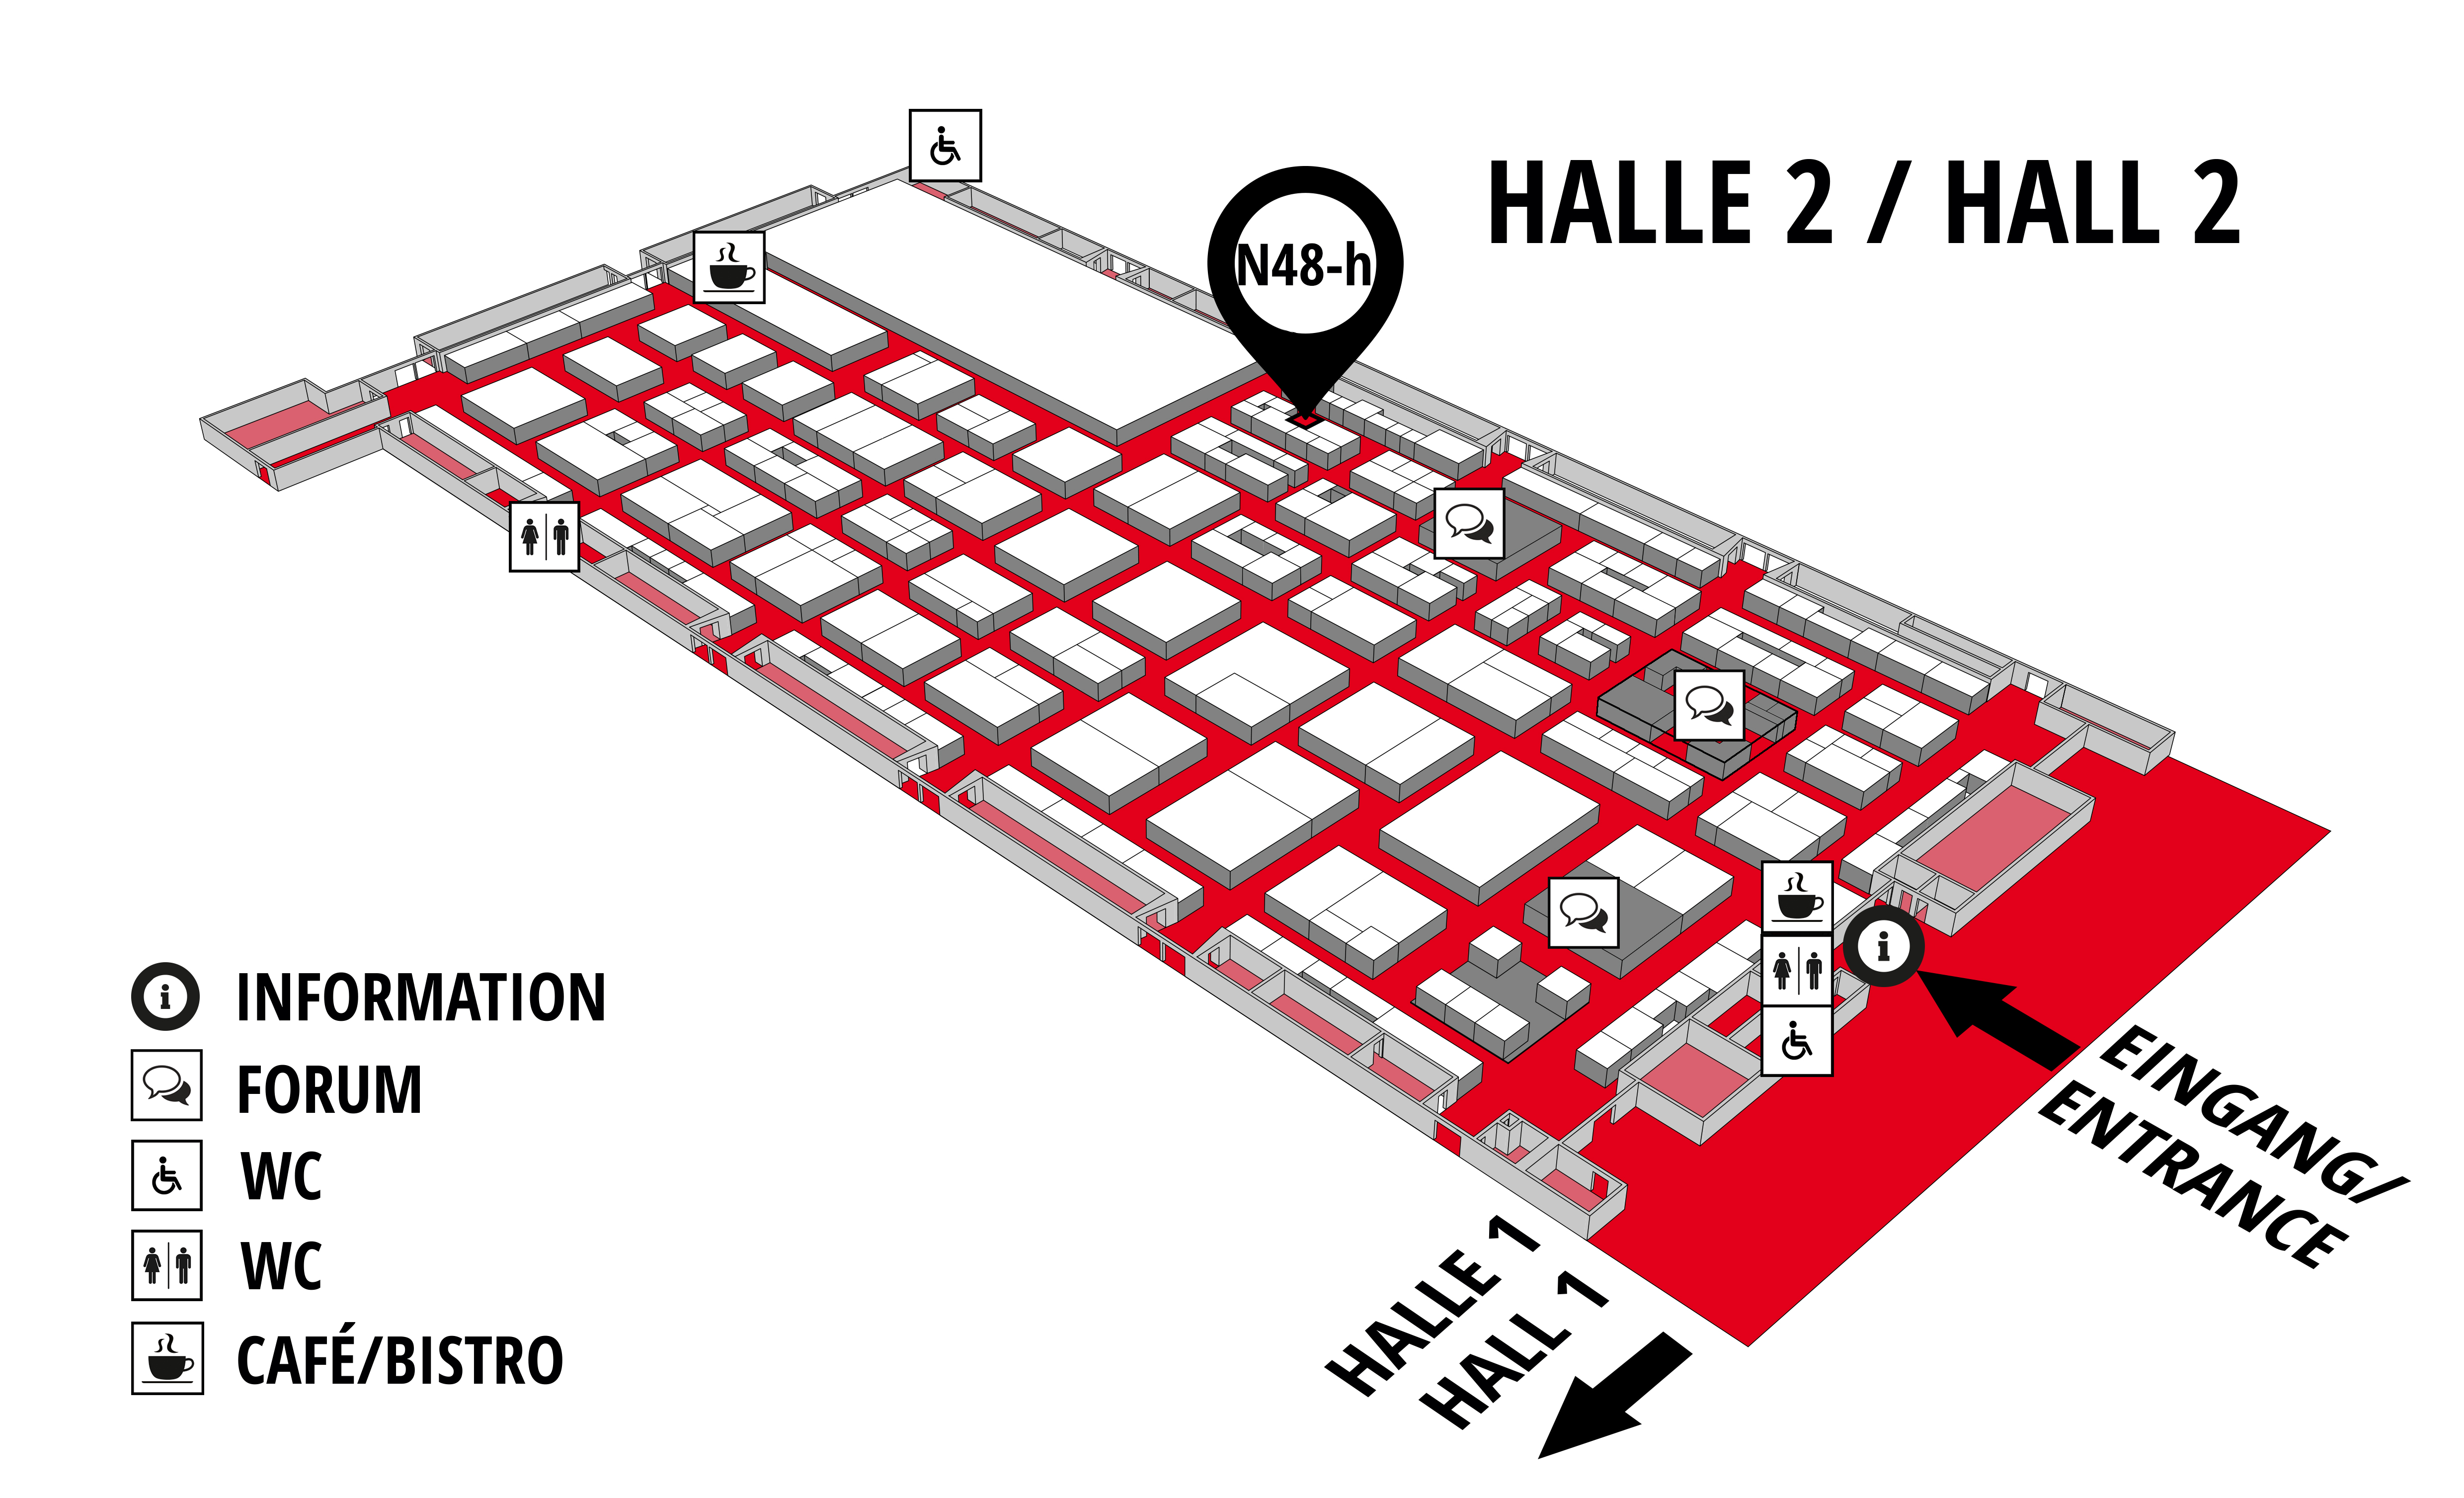 REHAB - Rehabilitation | Therapy | Care | Inclusion hall map (Hall 2): stand N48-h